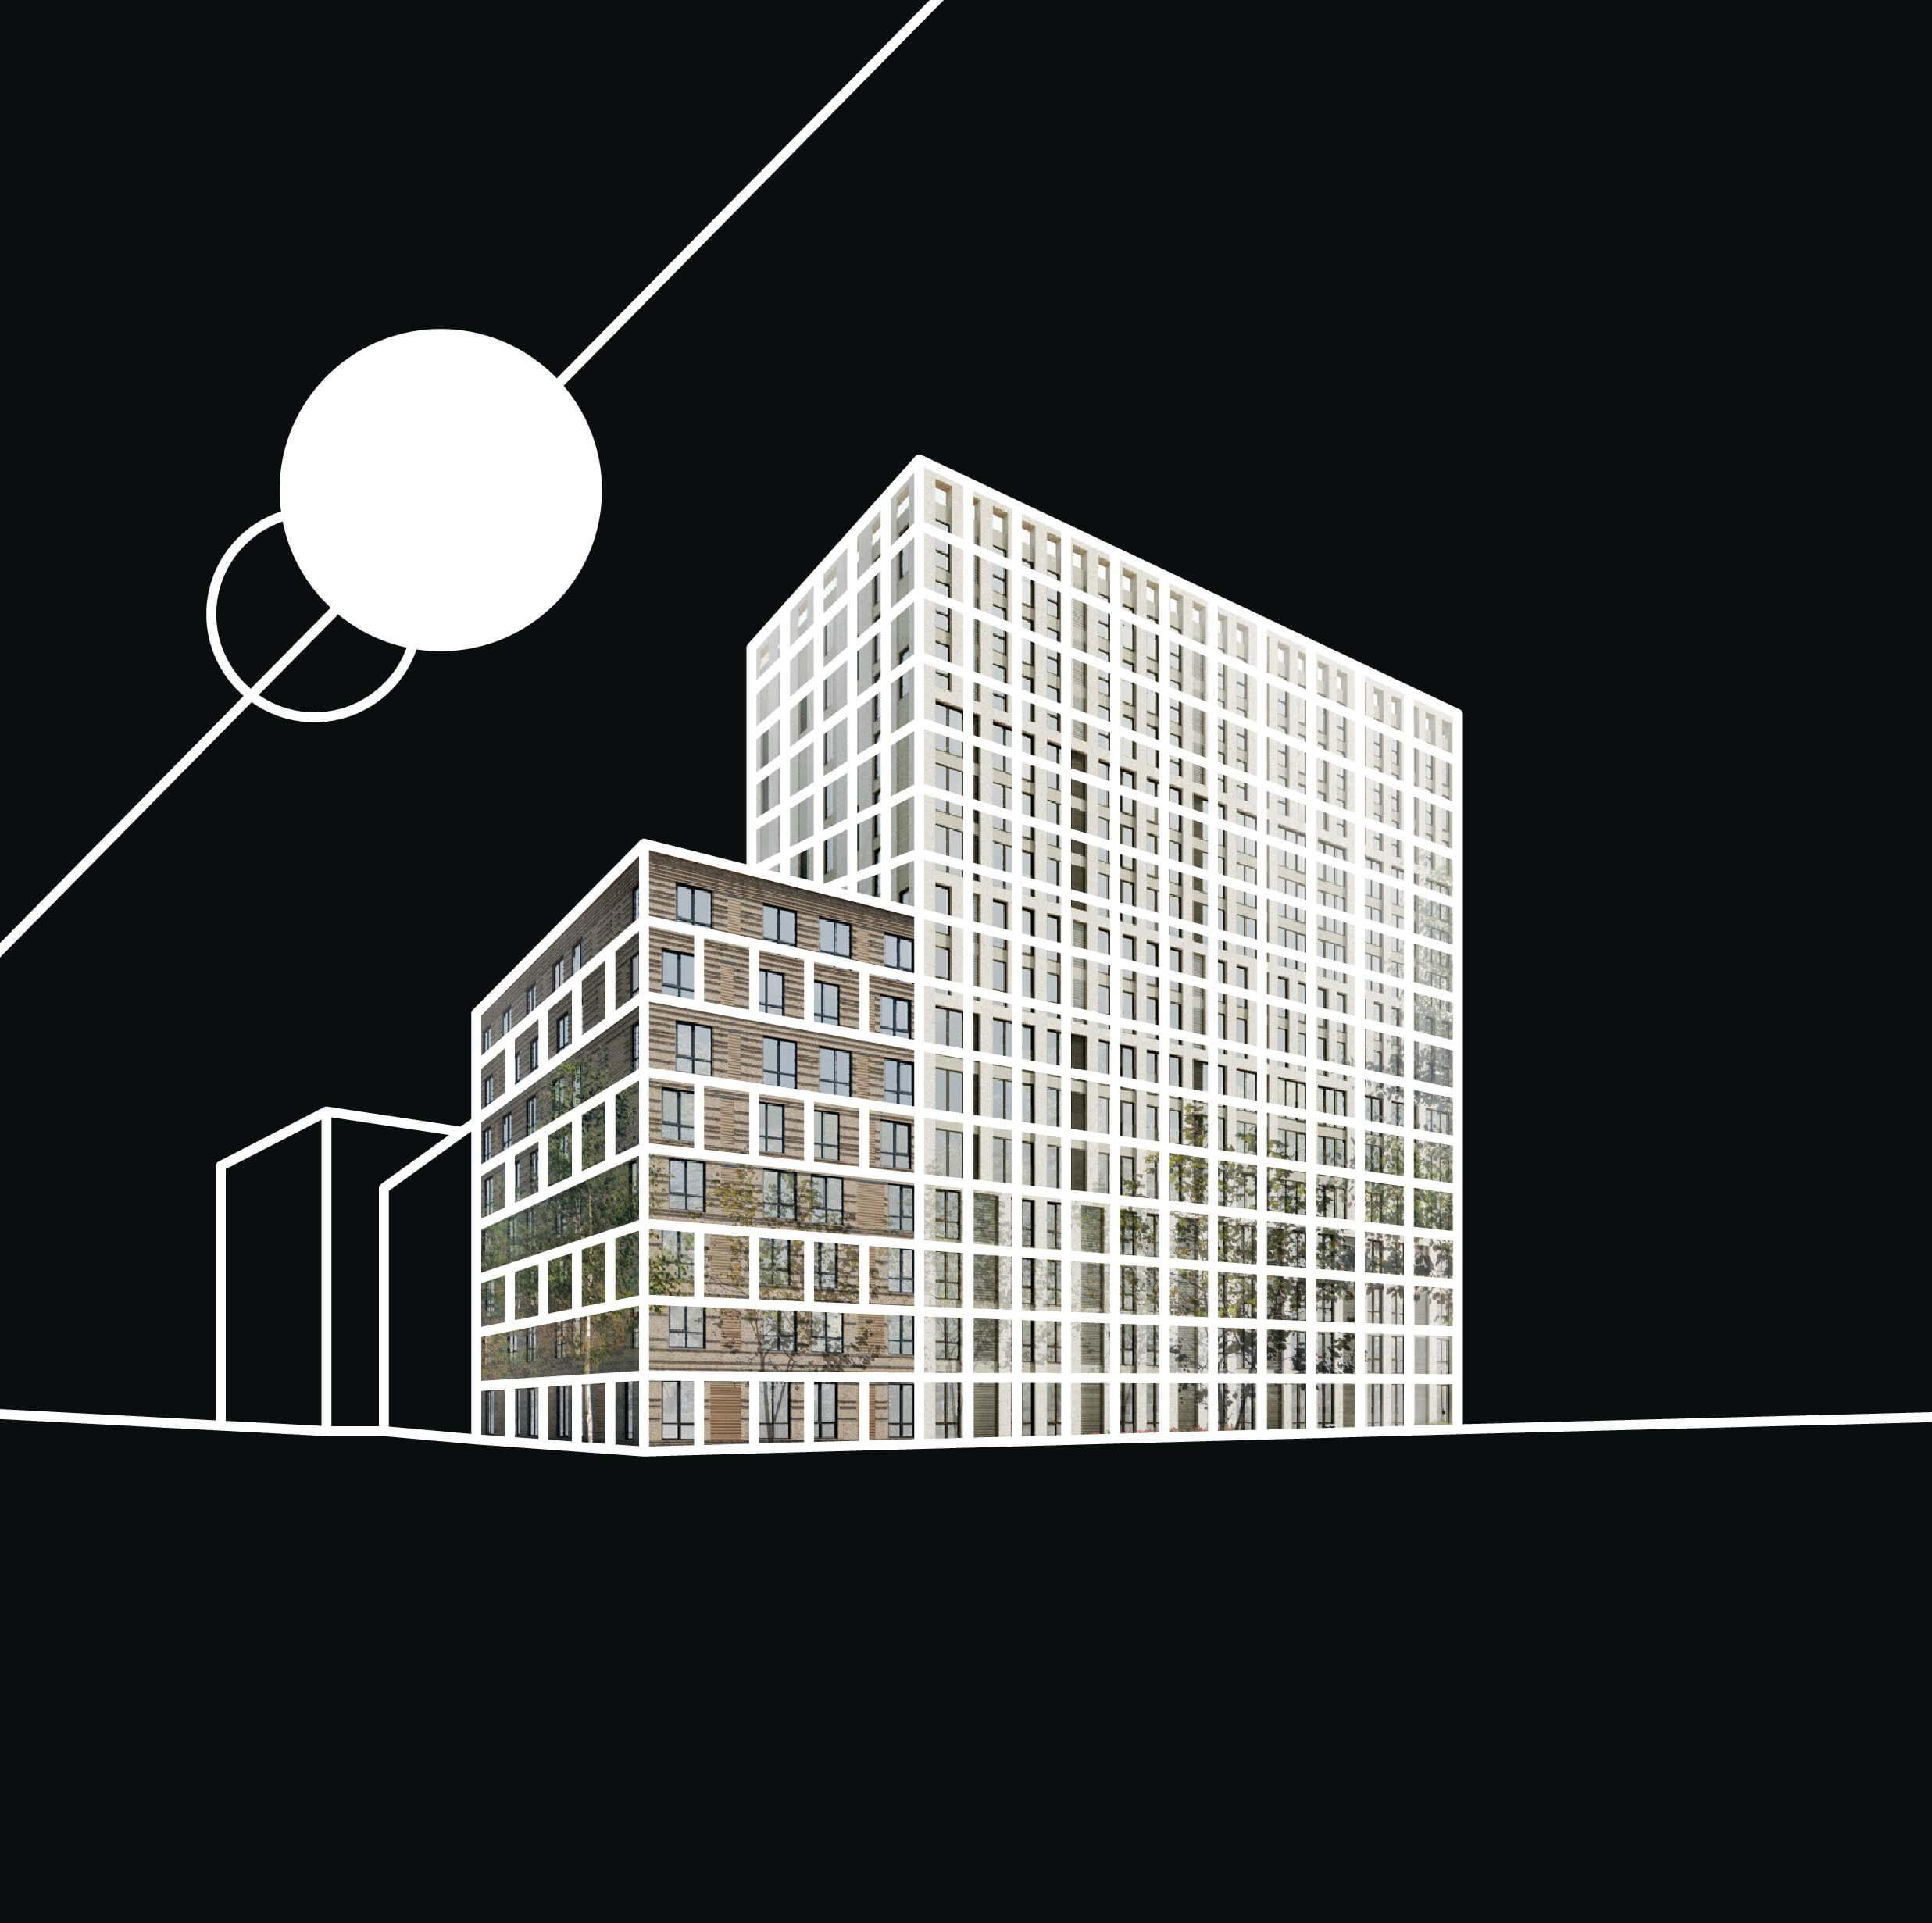 OurDomain Amsterdam Diemen - White drawing of the building with black background